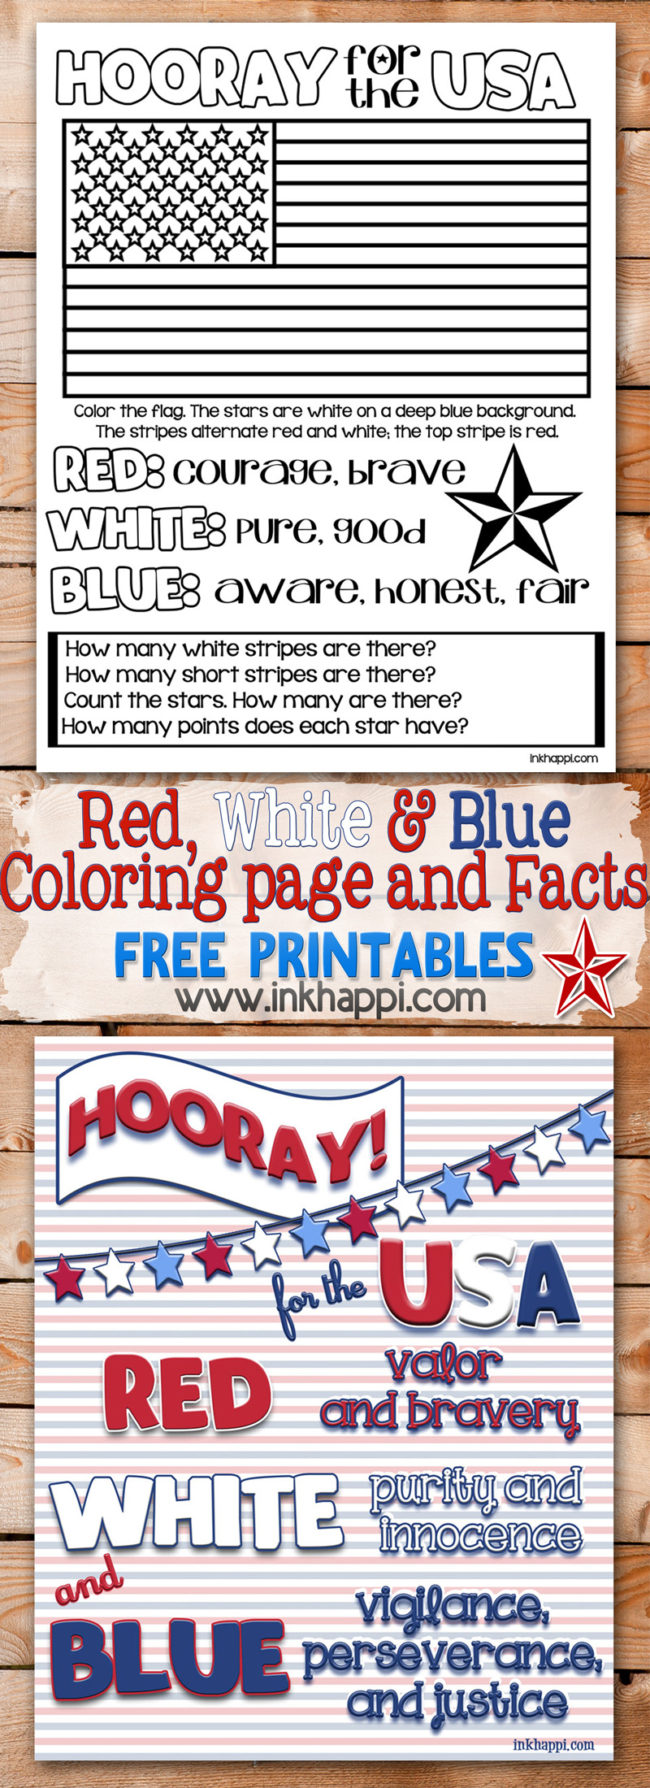 Red, White & Blue meaning of the the USA colors for adults and kids. Coloring page!